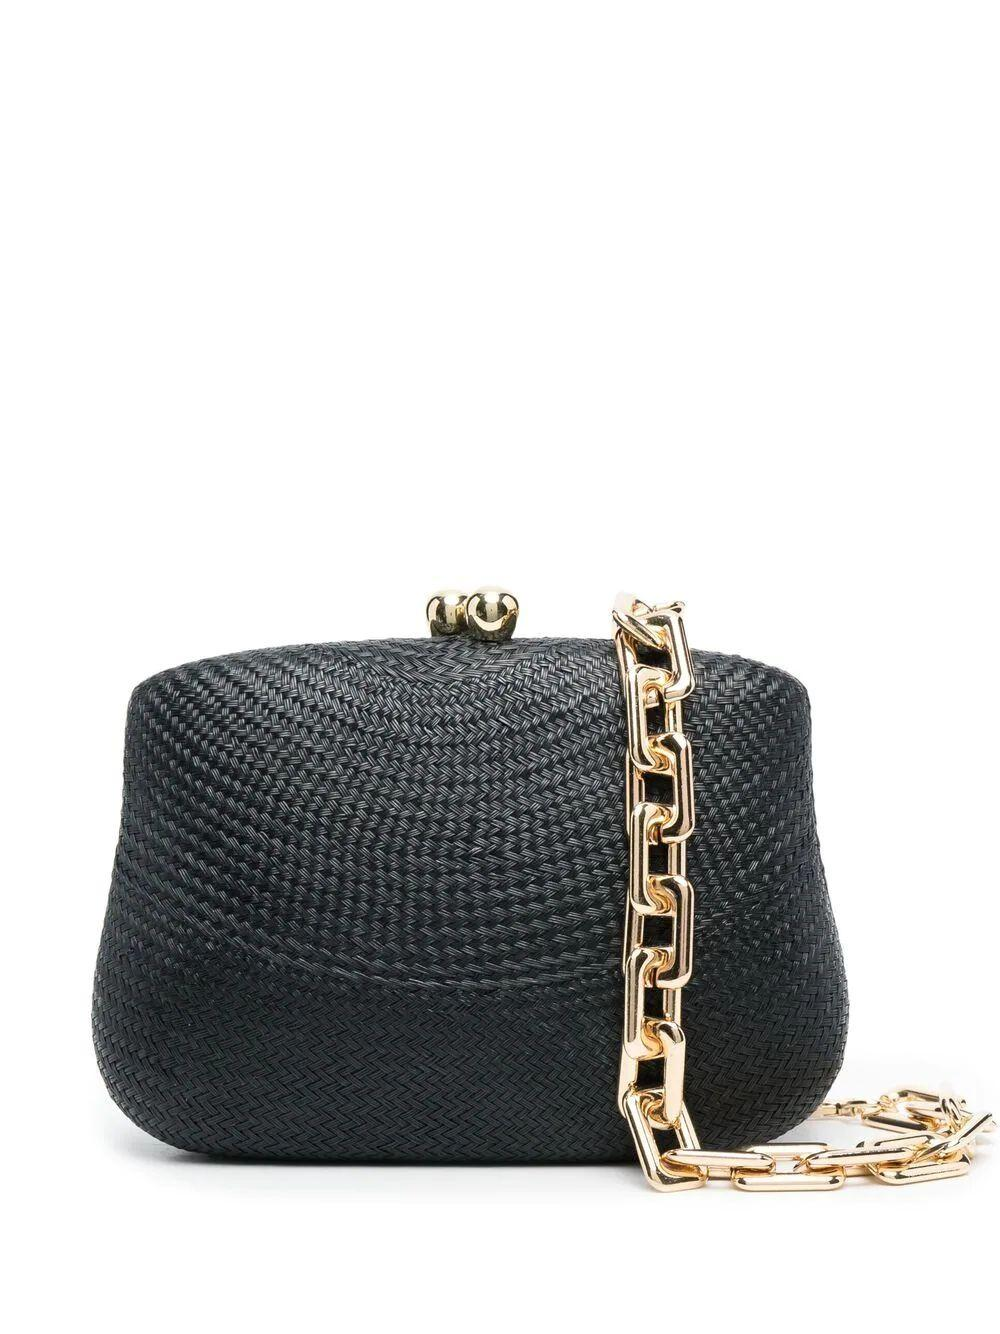 Blair Bun Clutch With Chain